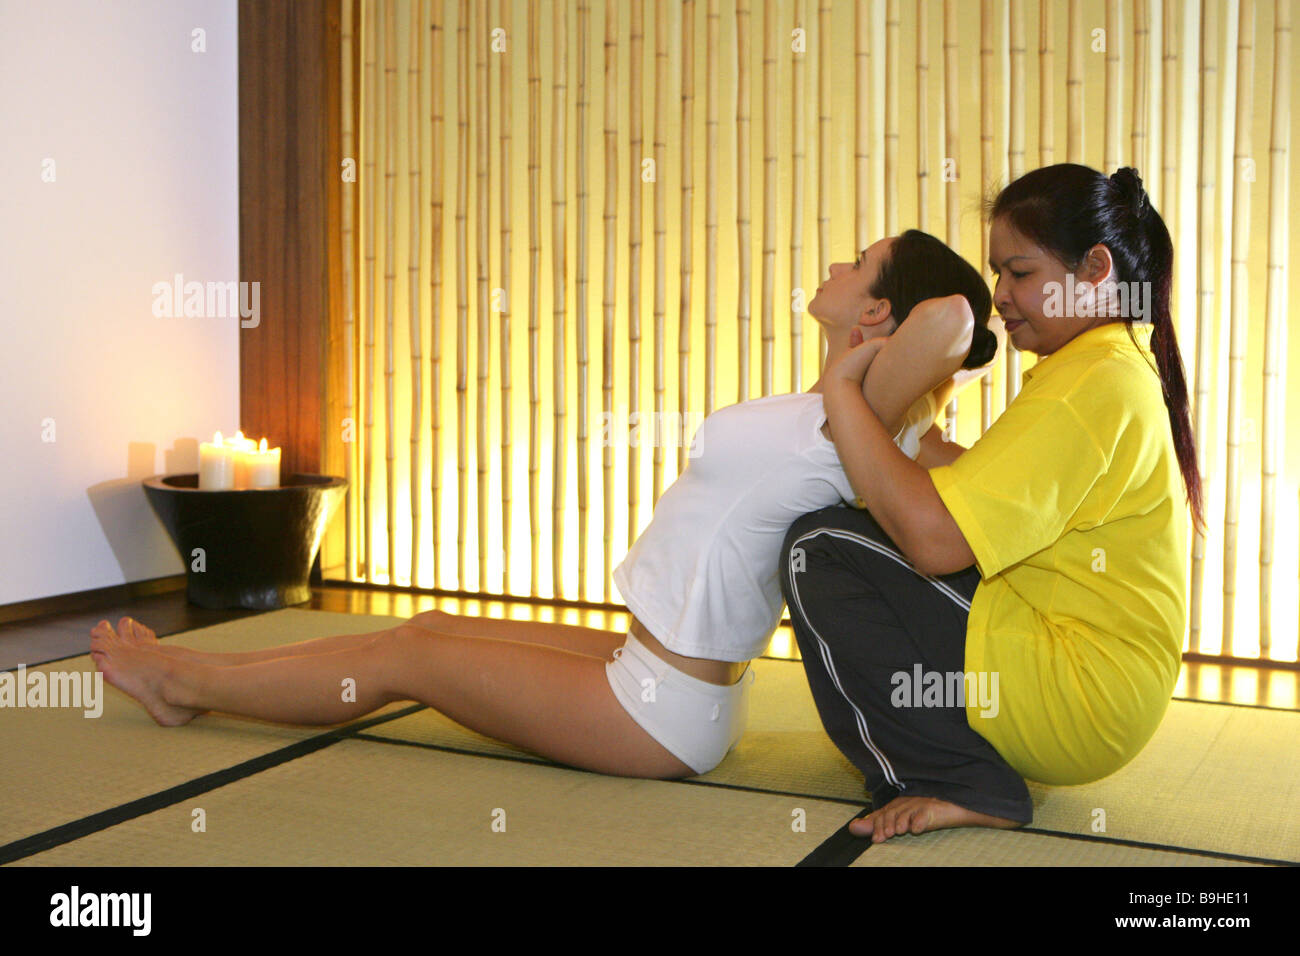 thai massage karlstad porno vidio